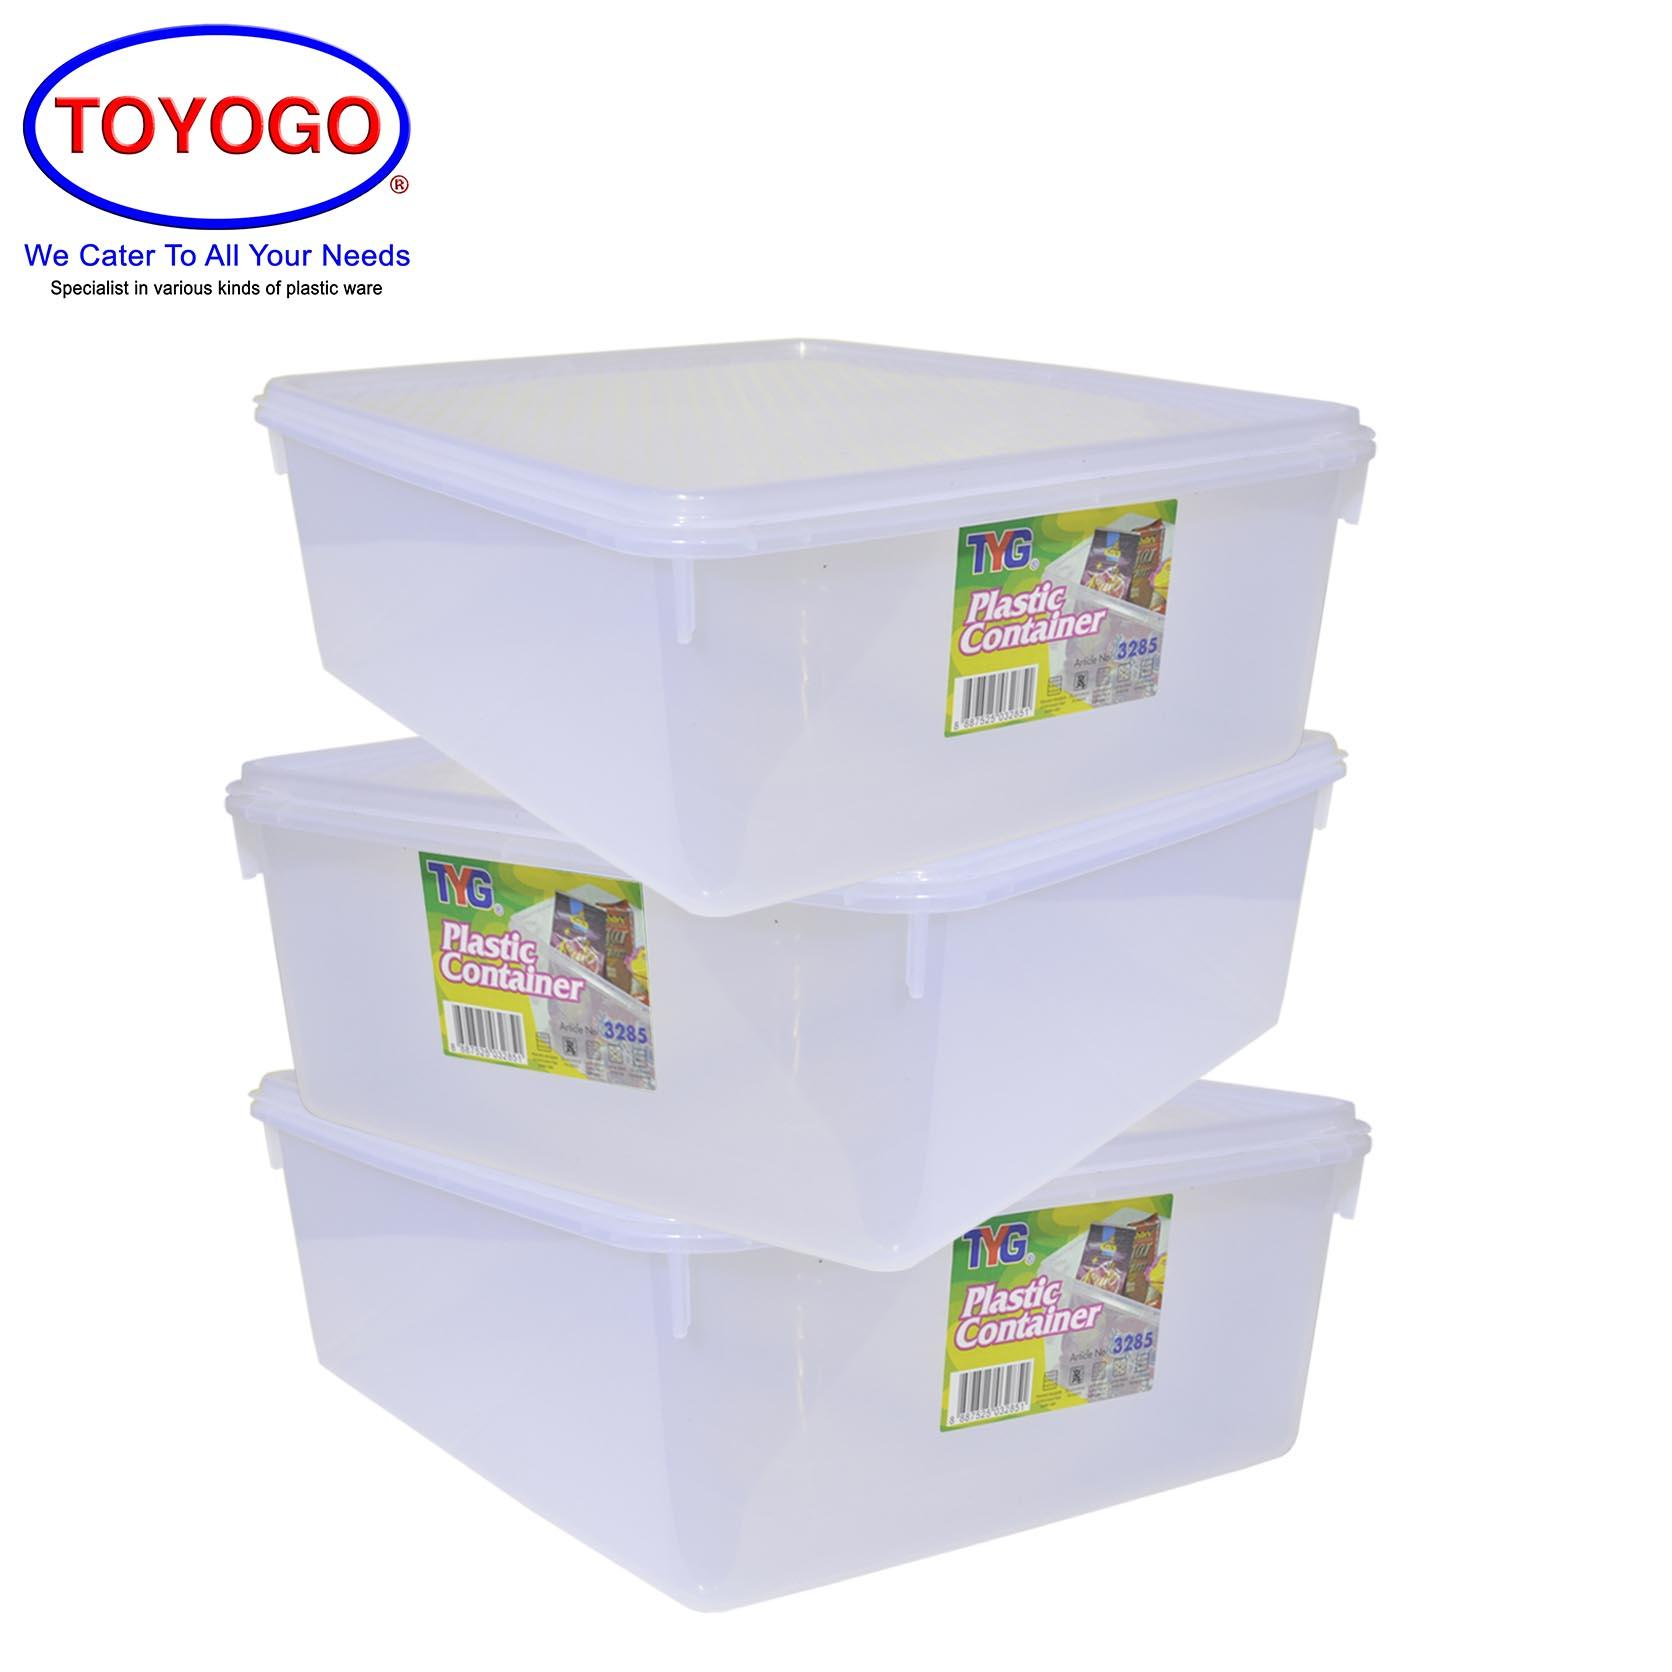 Toyogo 6L Diamond Container (Bundle of 3) (3285)